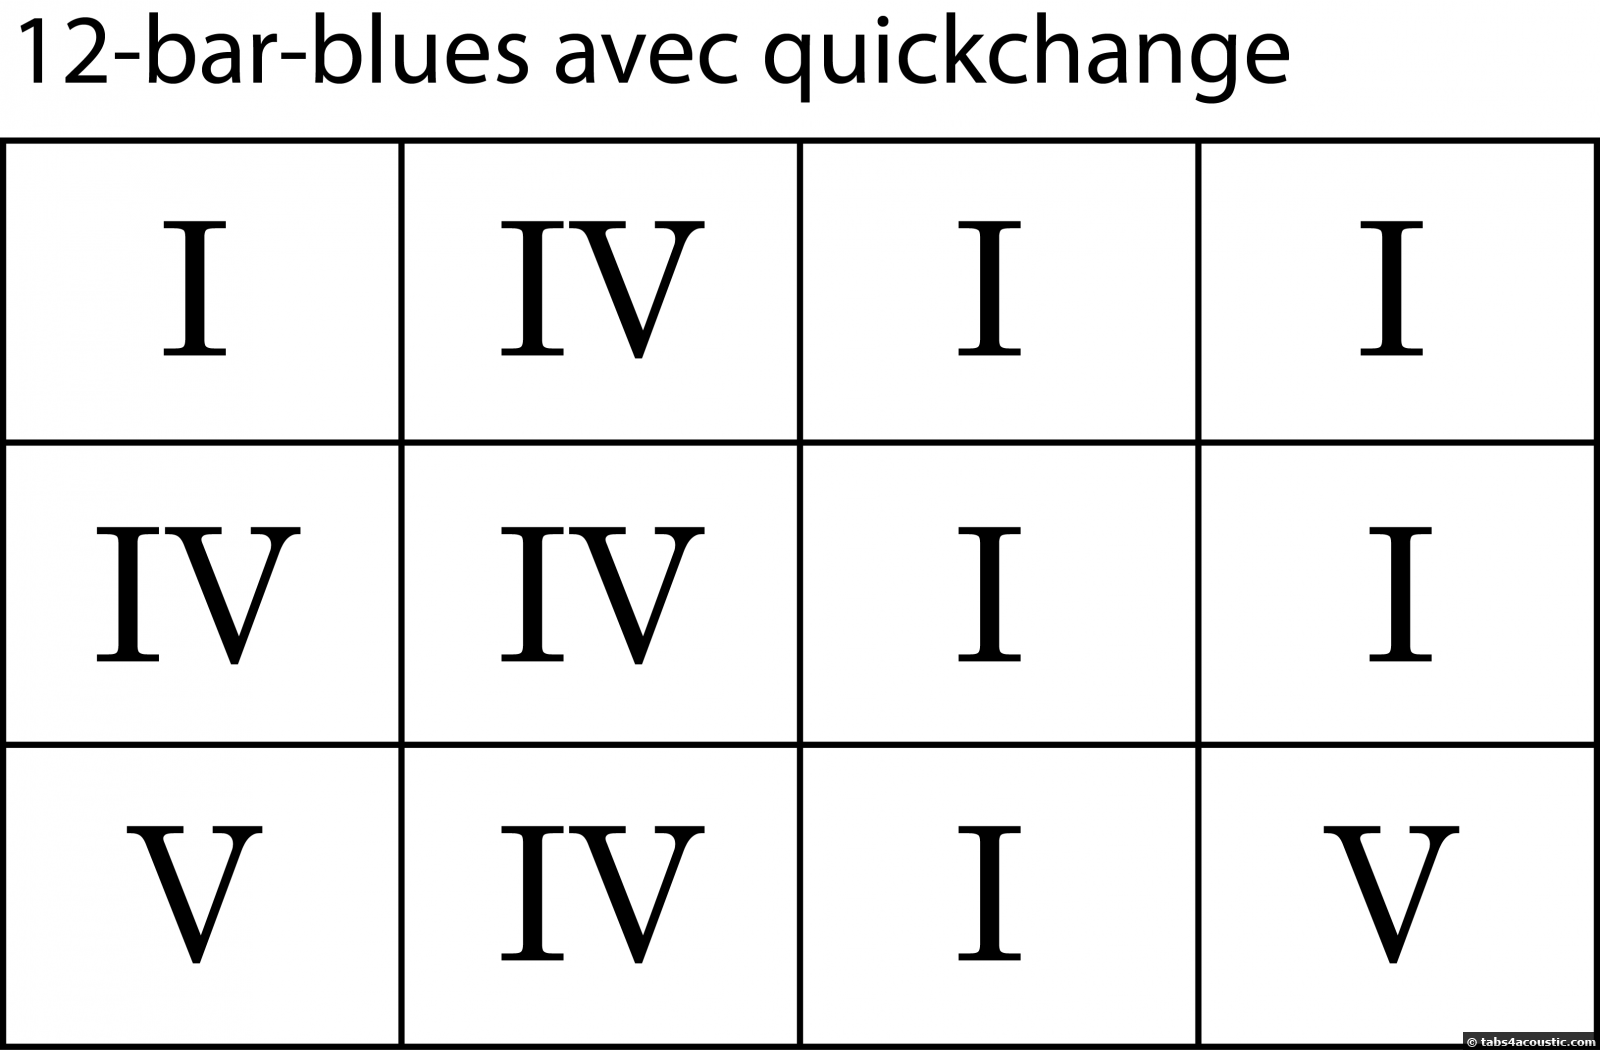 Grille 12-bar-blues avec quickchange